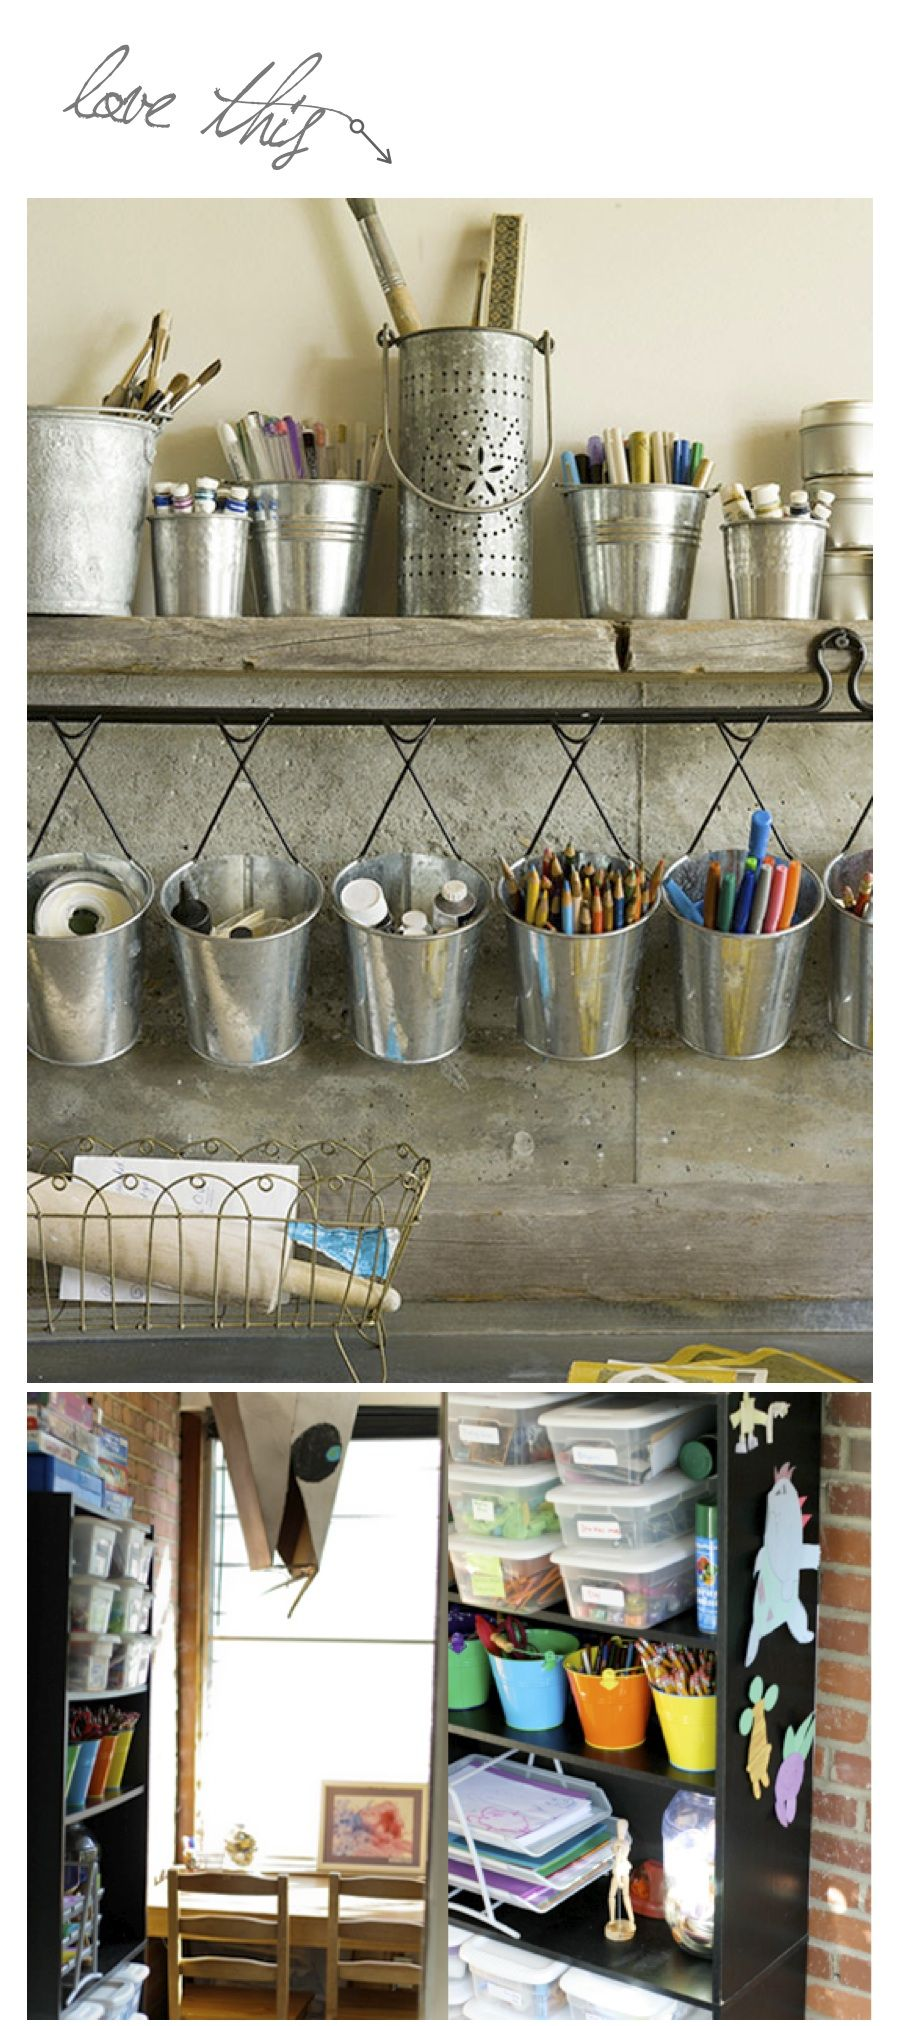 Now this is how to organize your art studio!